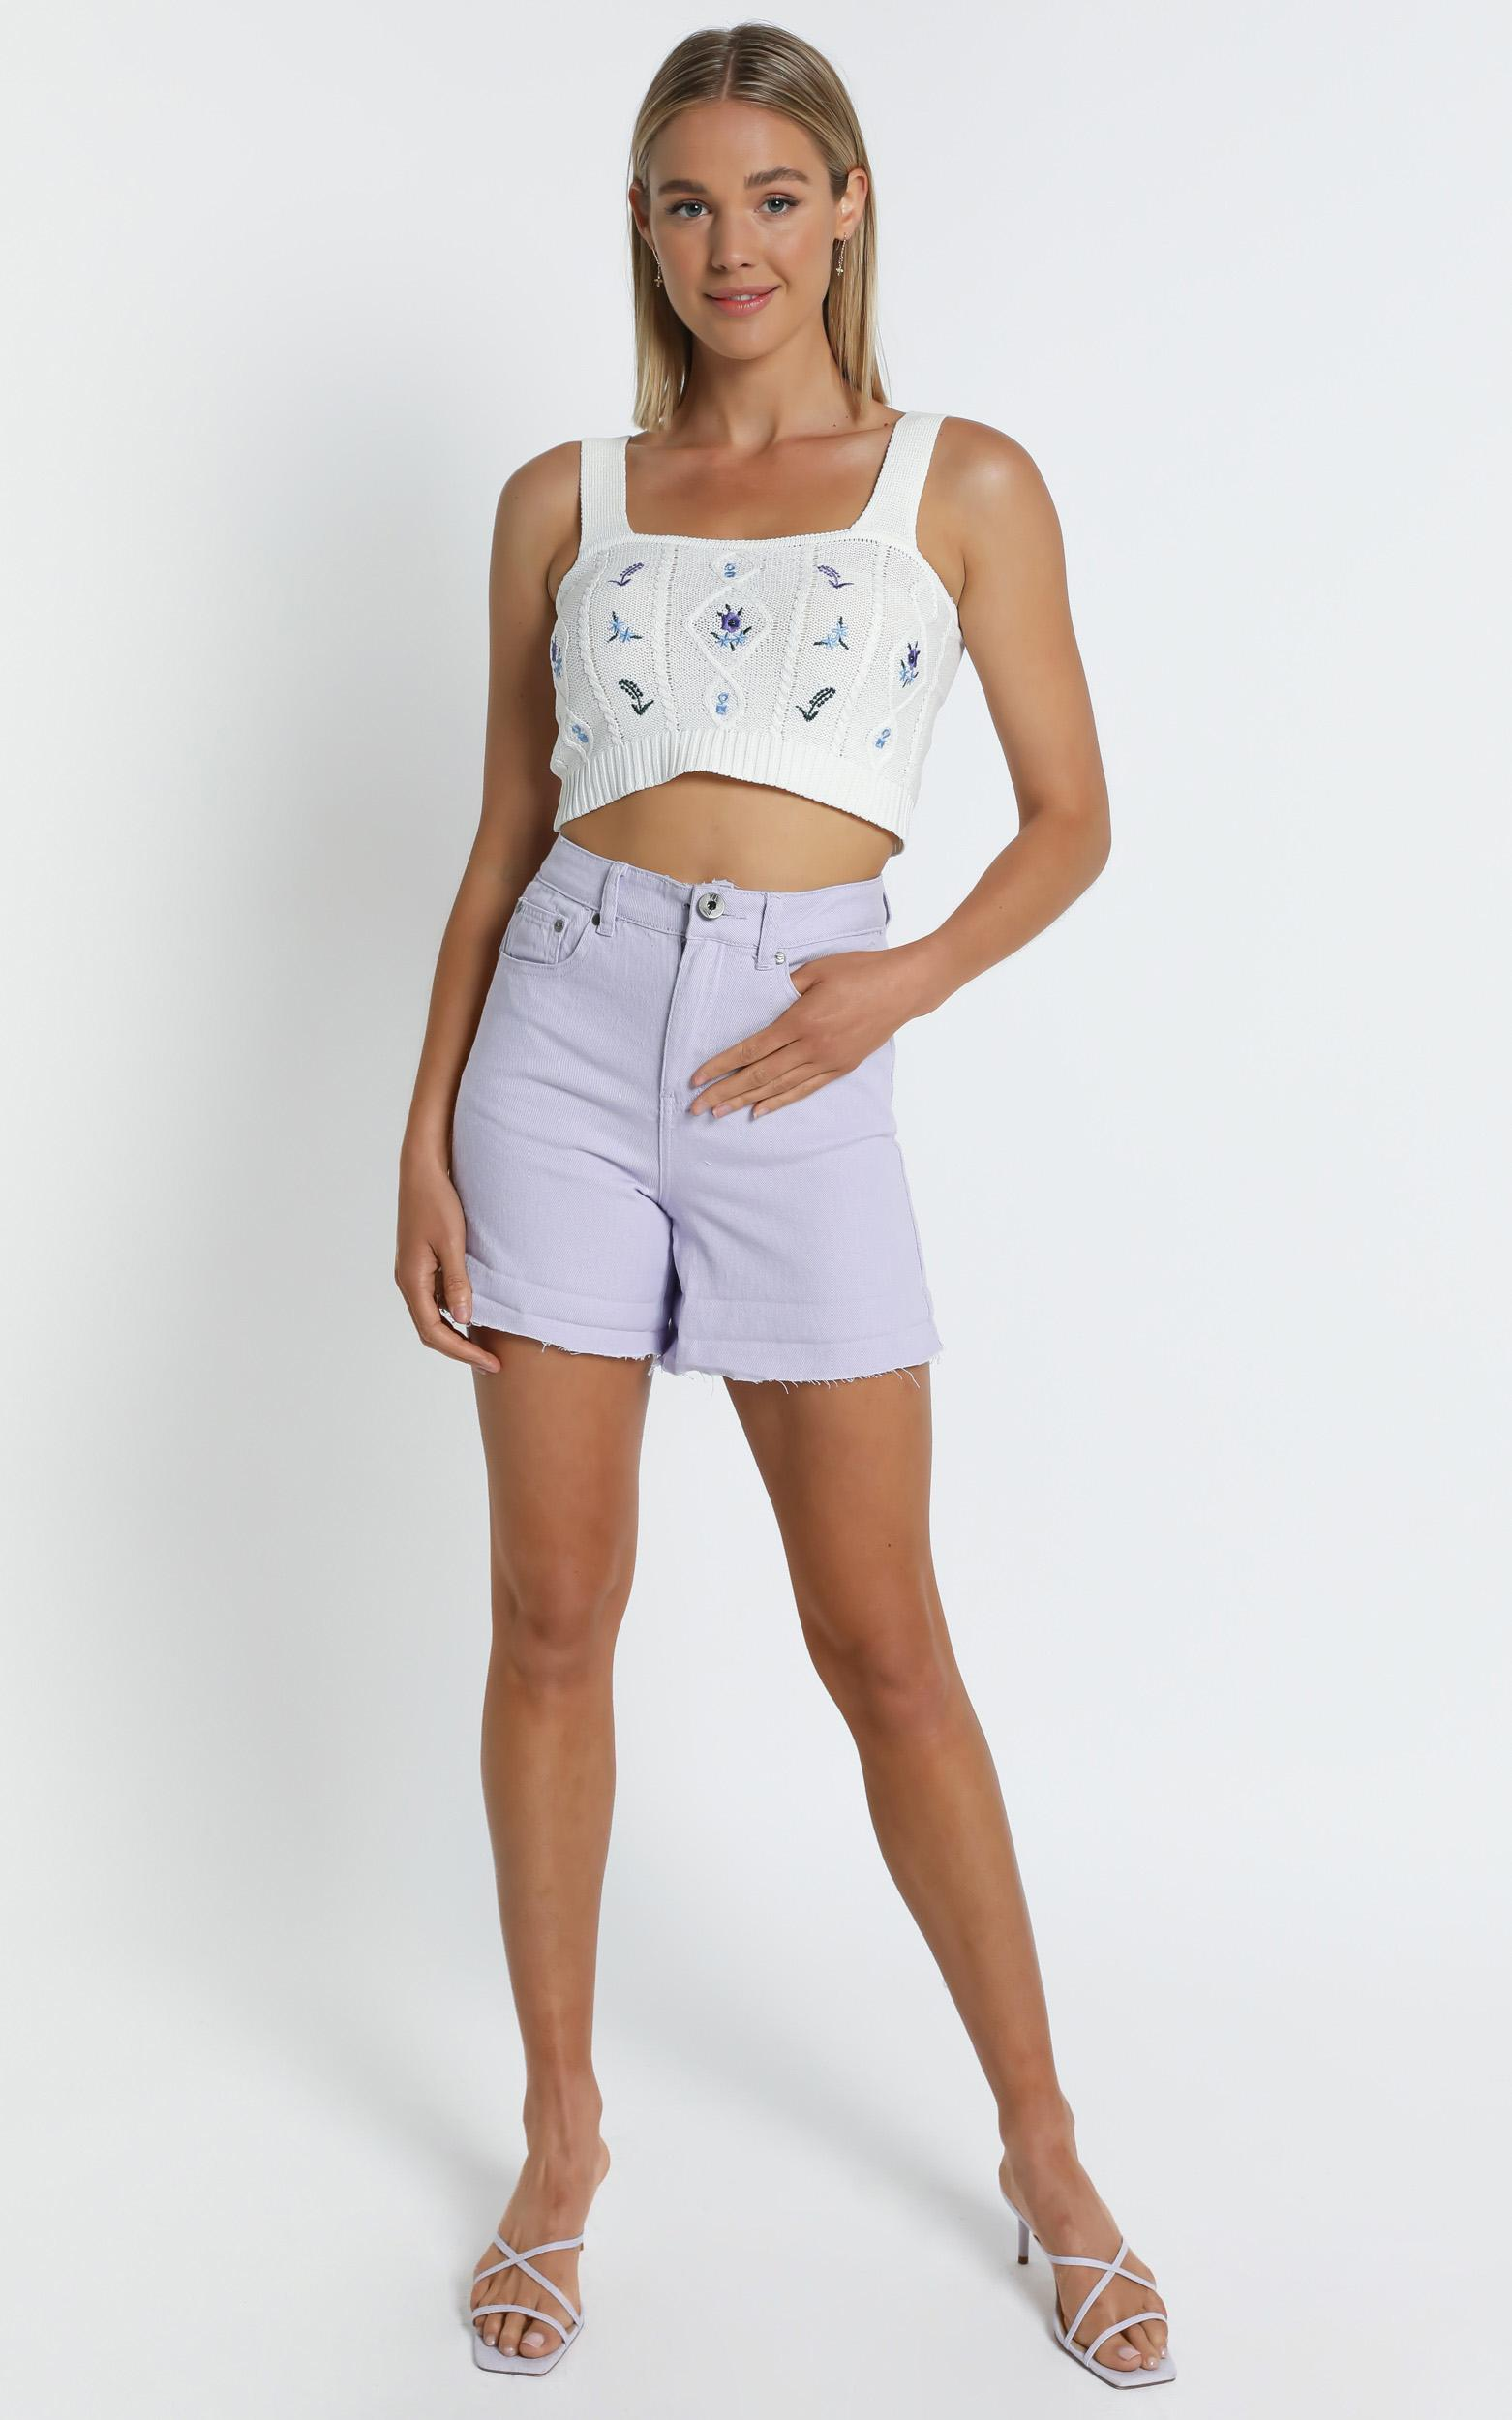 Minna Top in White - S/M, White, hi-res image number null